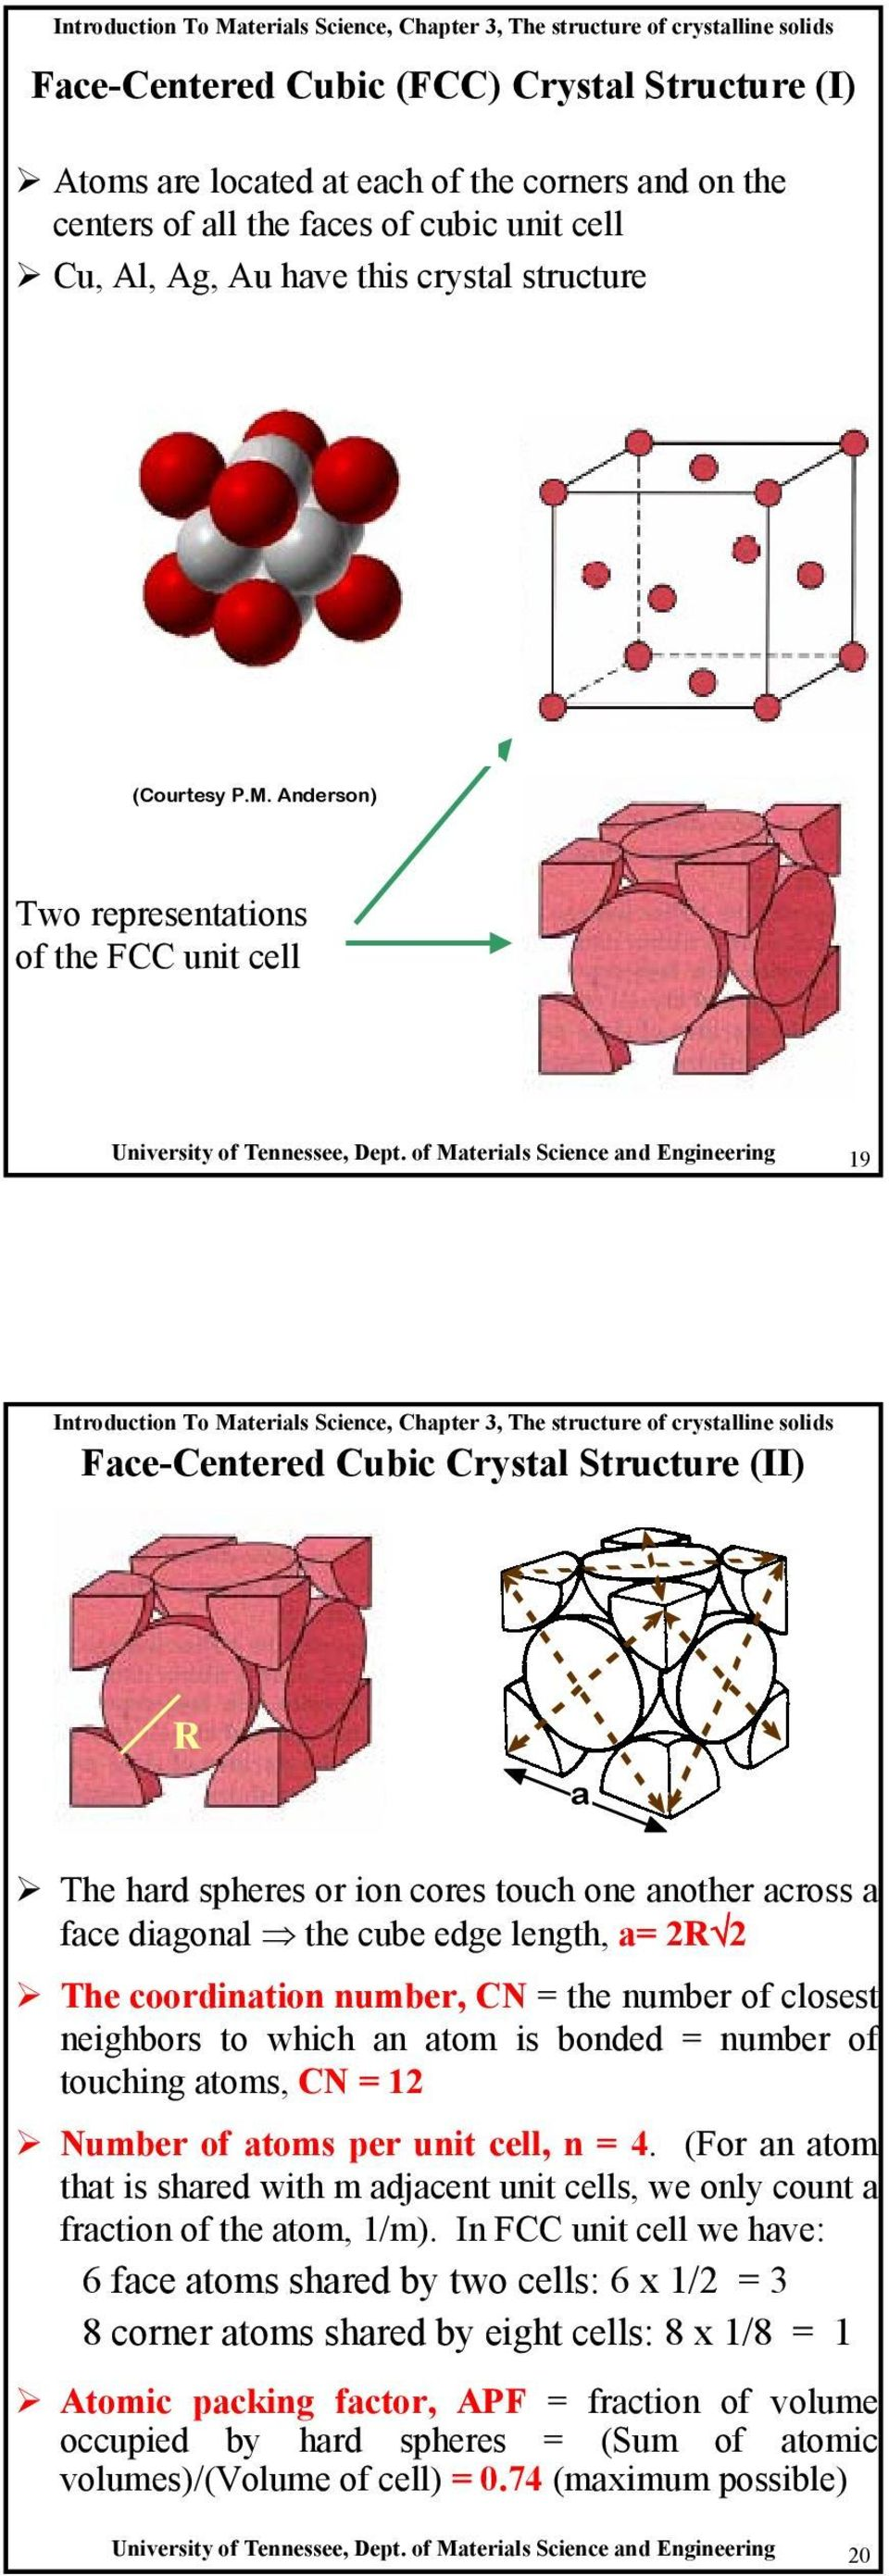 of Materials Science and Engineering 19 Face-Centered Cubic Crystal Structure (II) R a The hard spheres or ion cores touch one another across a face diagonal the cube edge length, a= 2R 2 The